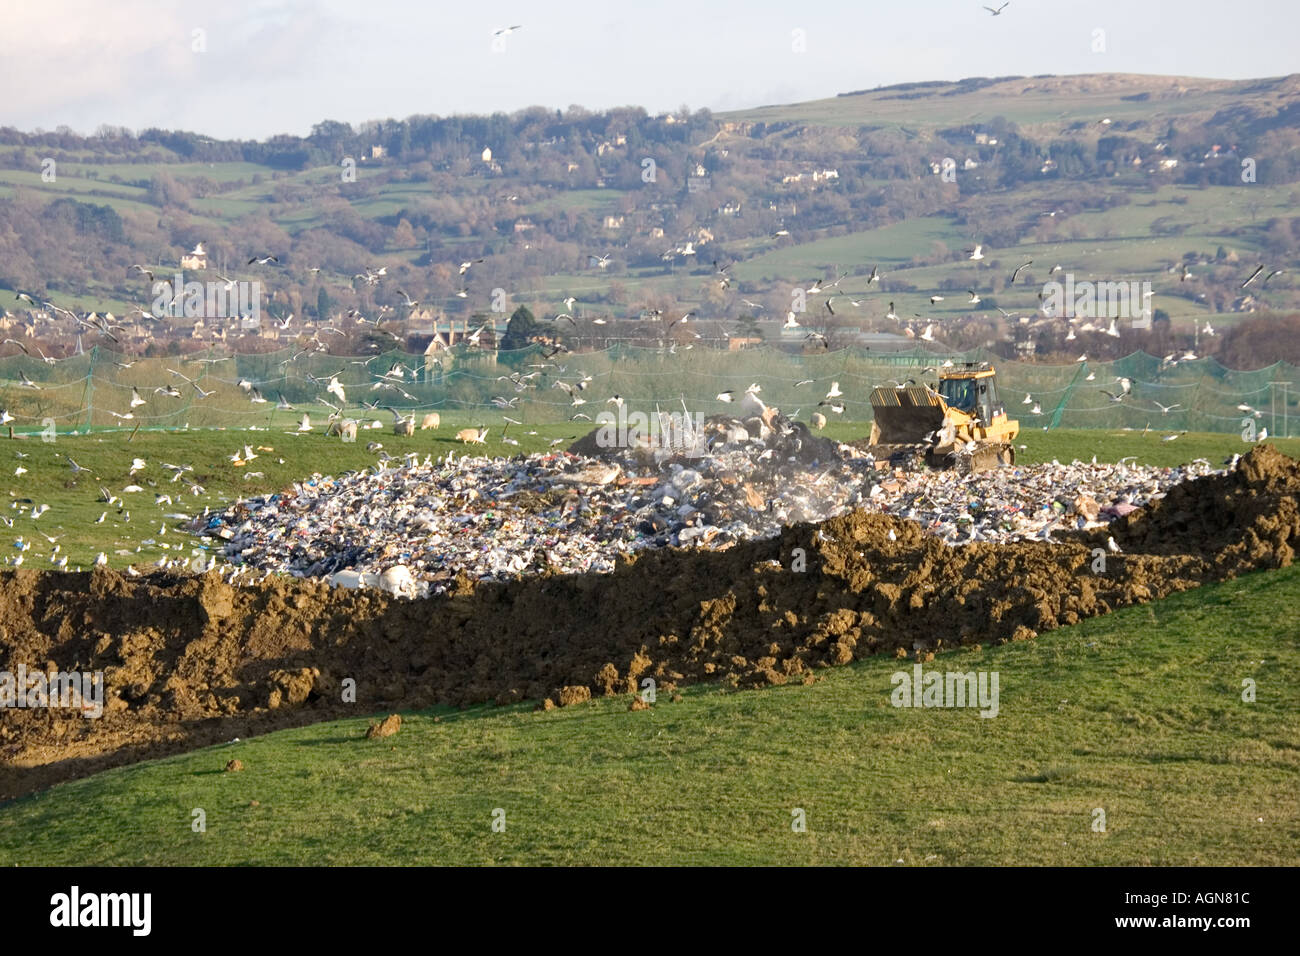 Gulls circling by bulldozer working on landfill site in Cotswolds Wingmoor Farm Cory Environmental UK - Stock Image